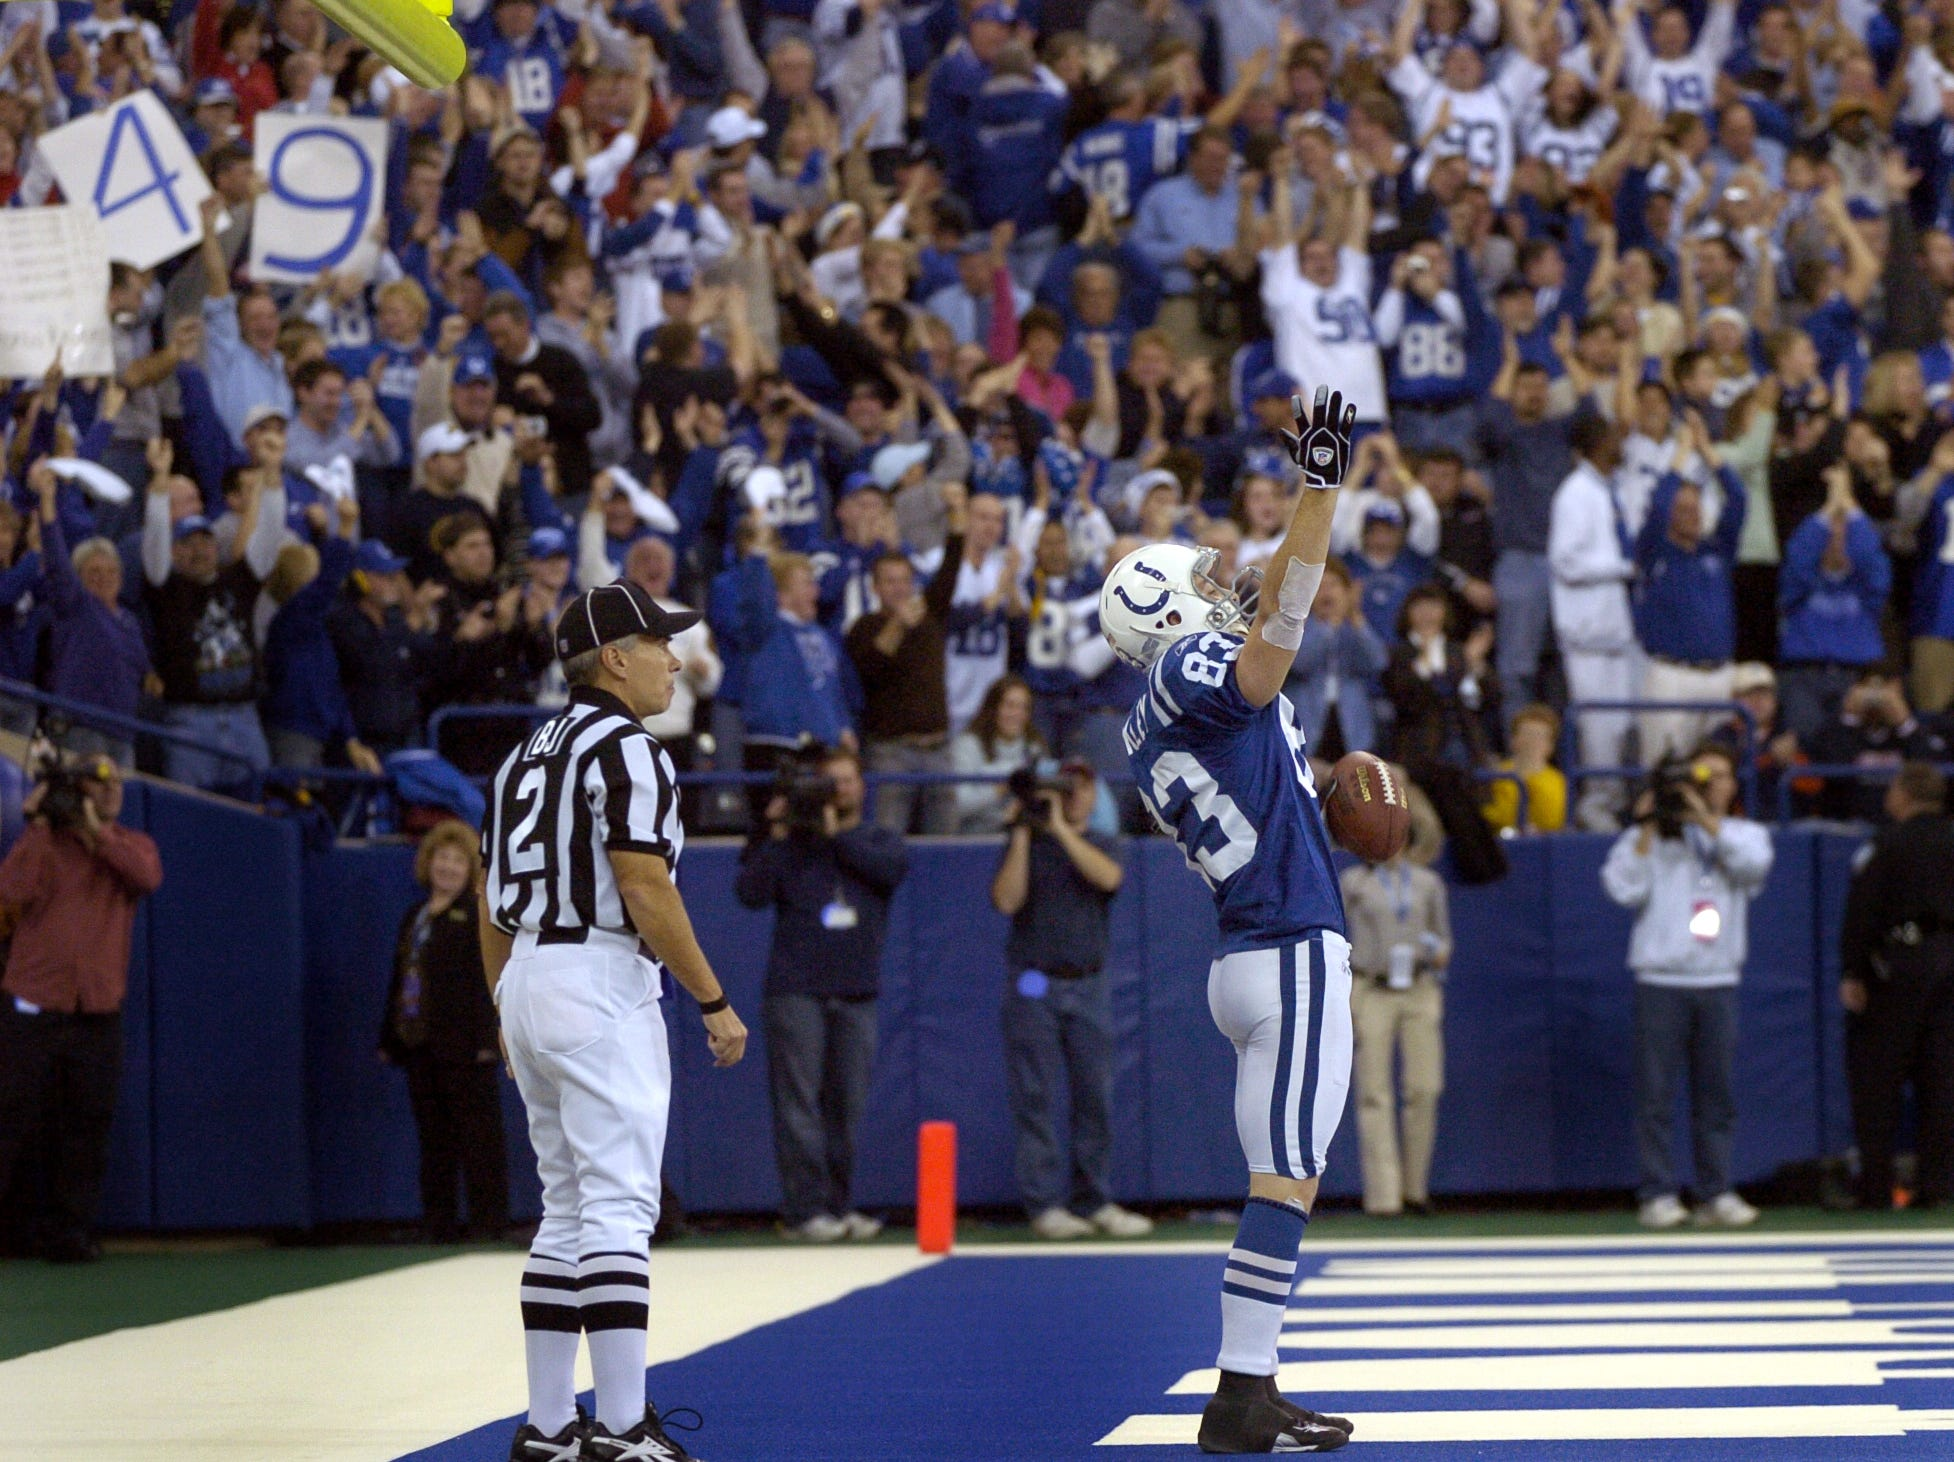 Indianapolis Colts Brandon Stokley celebrates after he caught a touchdown pass from Peyton Manning, Manning's 49th of the season, late in the fourth quarter of their game against the San Diego Chargers Sunday afternoon at the RCA Dome on Dec 26, 2004.